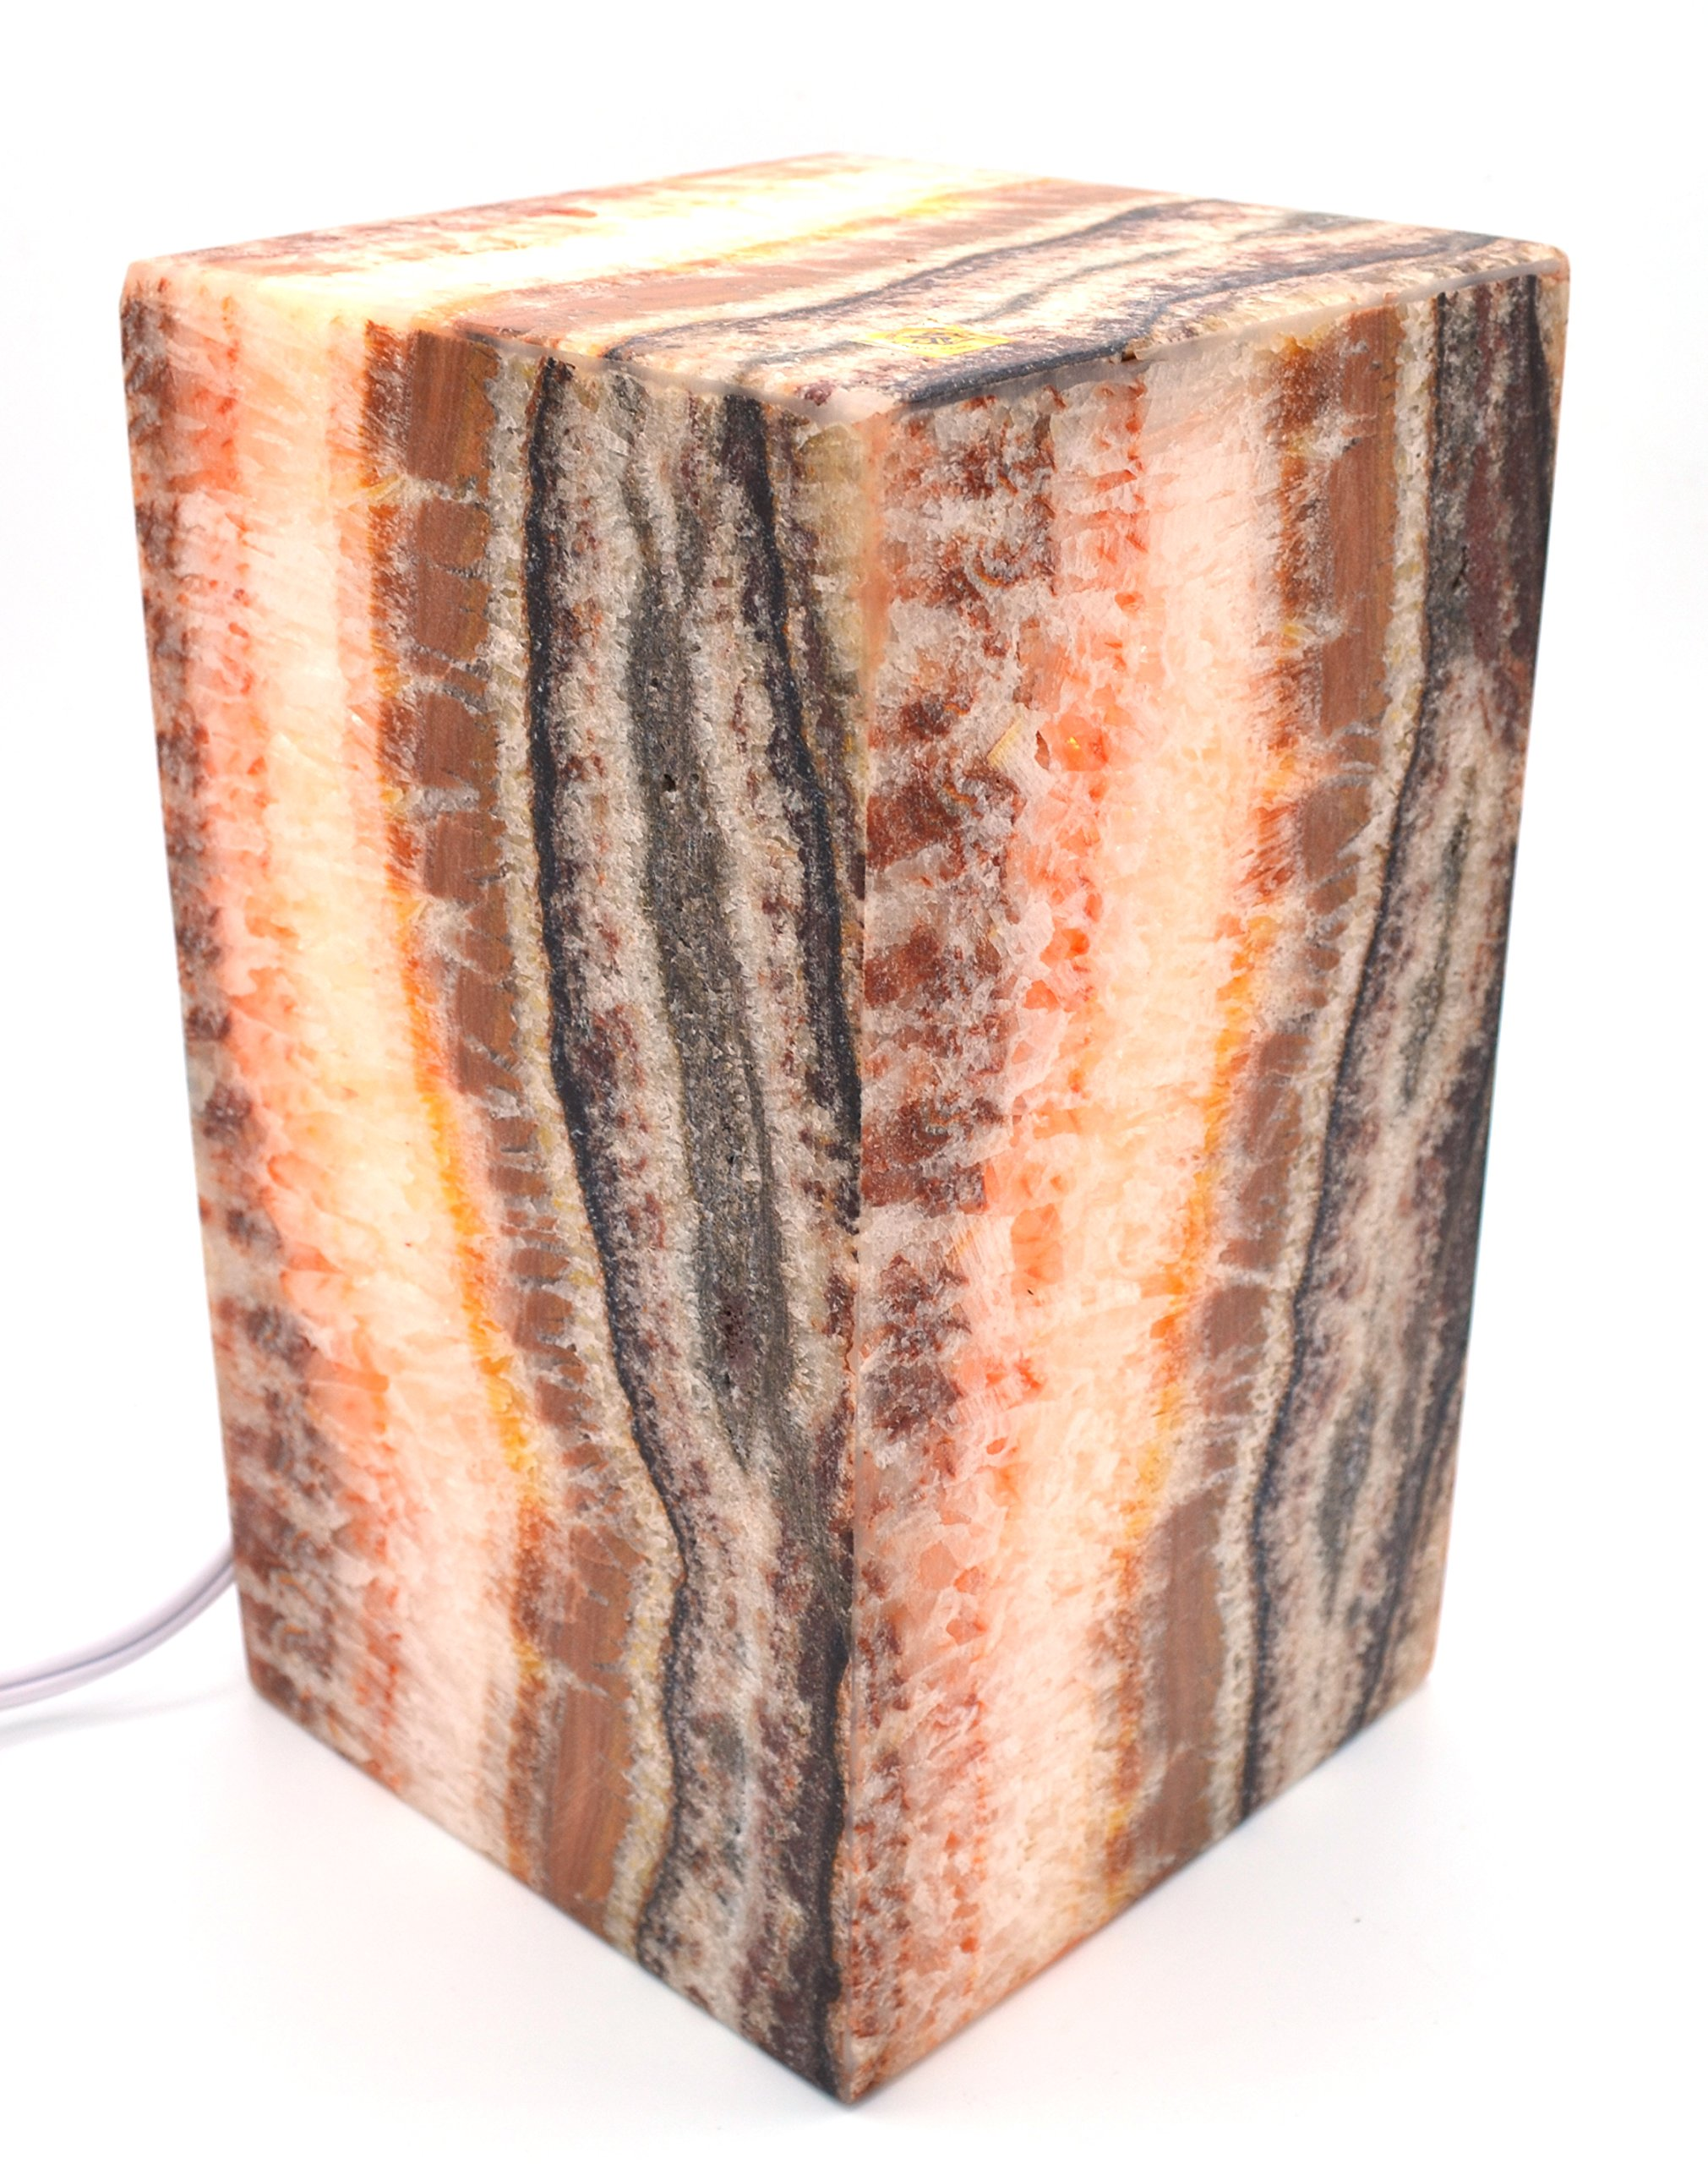 Ochre Red Stone Prism Lamp, 10'' Tall, Carved from Real North American Onyx - The Artisan Mined Series by hBAR